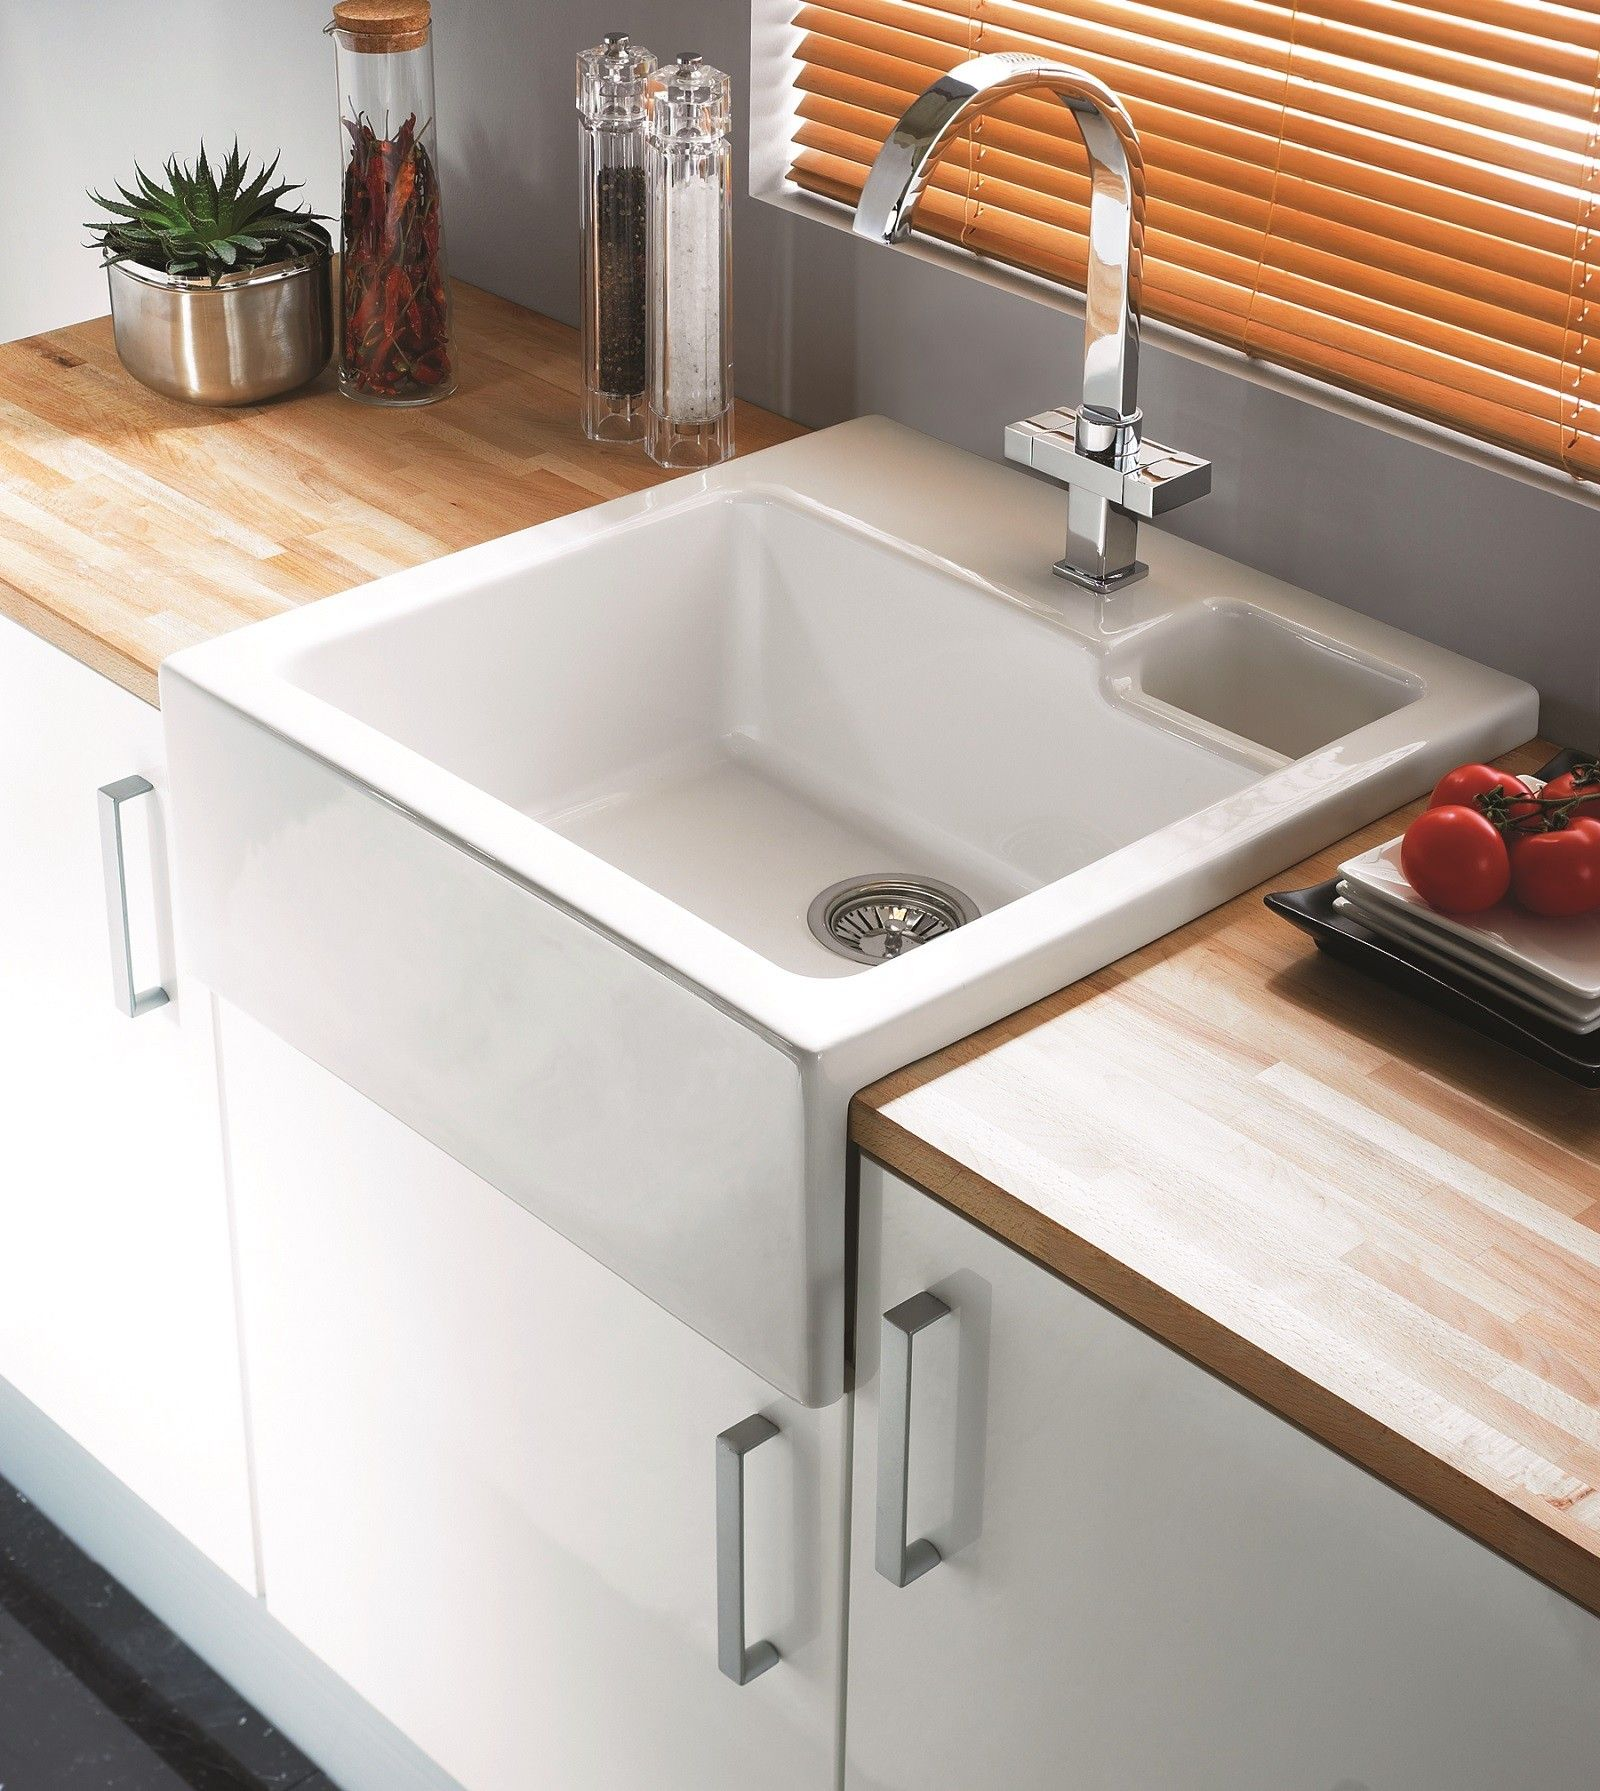 Clearwater Berlioz 60 Belfast Sink Apron Front Waste East Coast Kitchens Bedrooms Ltd Küchenumbau Umbau Kleiner Küche Küchendesign